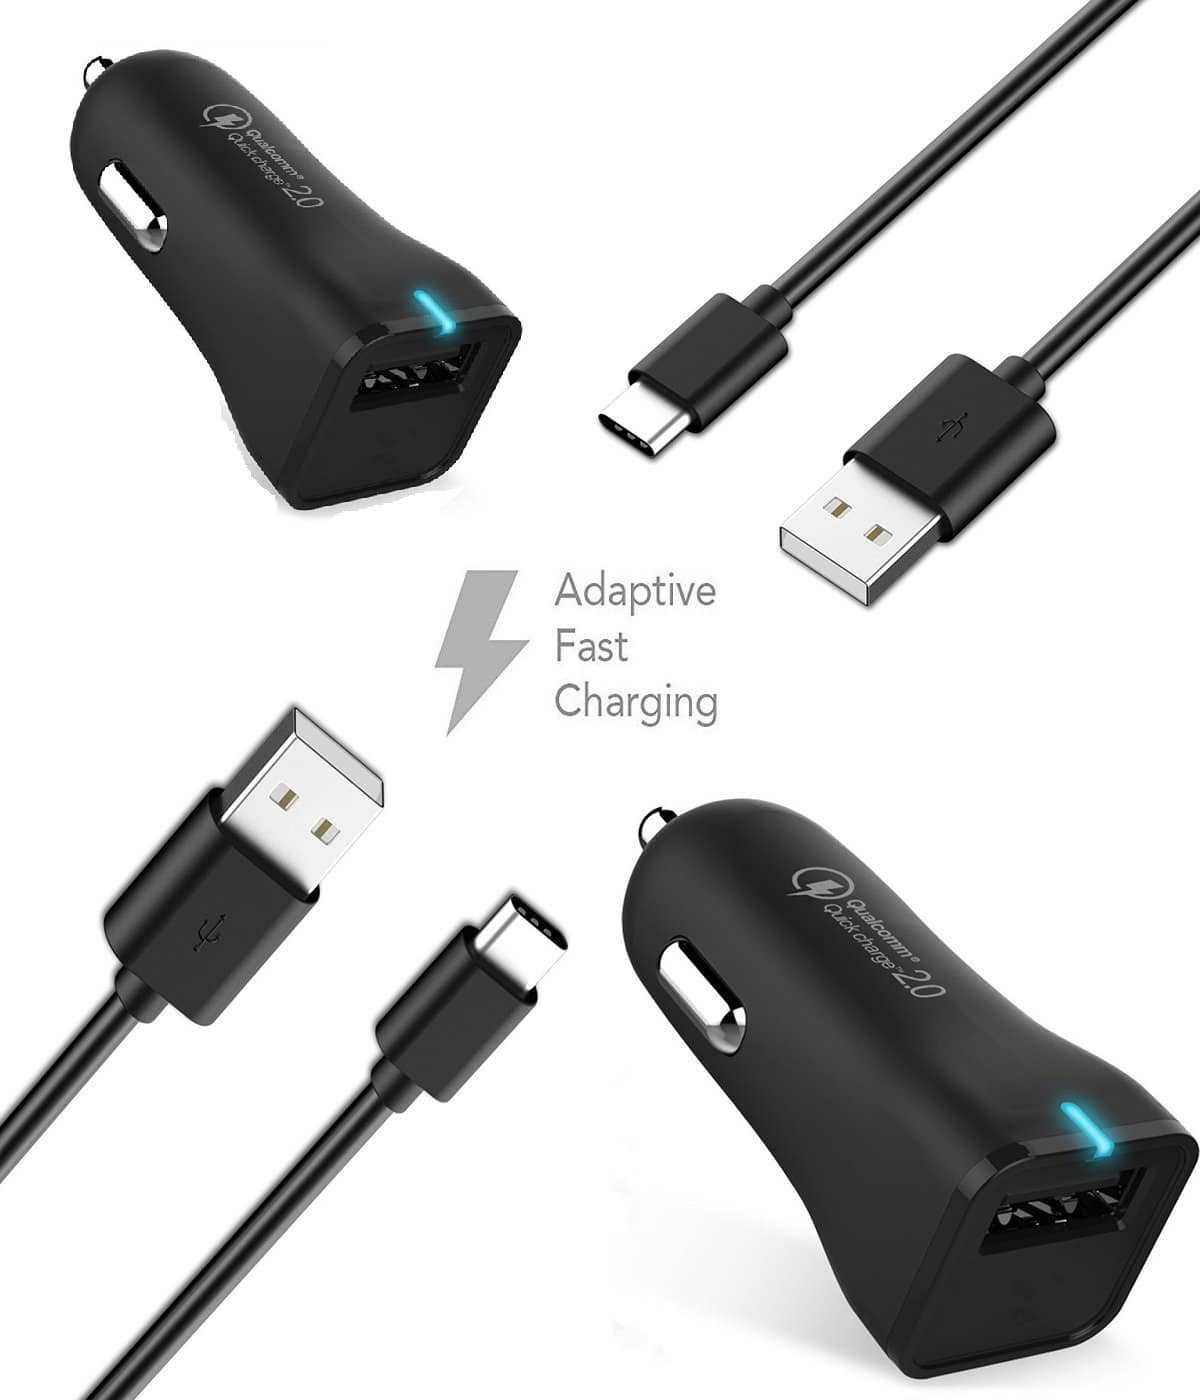 Samsung Galaxy S8 Charger! Adaptive Fast Charger Type-C Cable {2 Car Chargers + 2 Type-C Cables} True Digital Adaptive Fast Charging uses dual voltages for up to 50% faster charging!